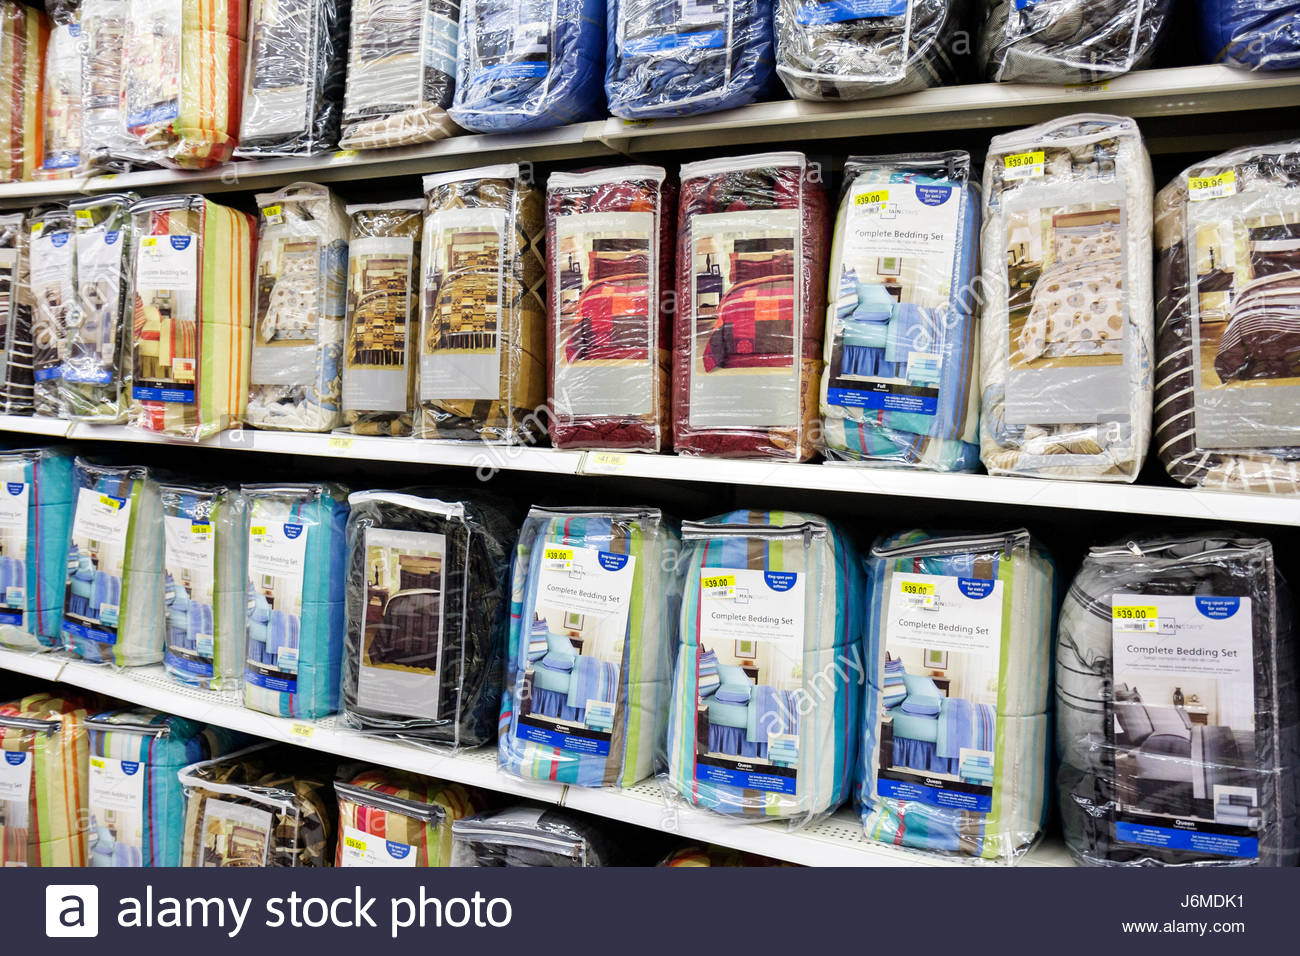 Miami Hialeah Florida Wal-Mart Walmart shopping for sale retail display bed cover - Stock Image